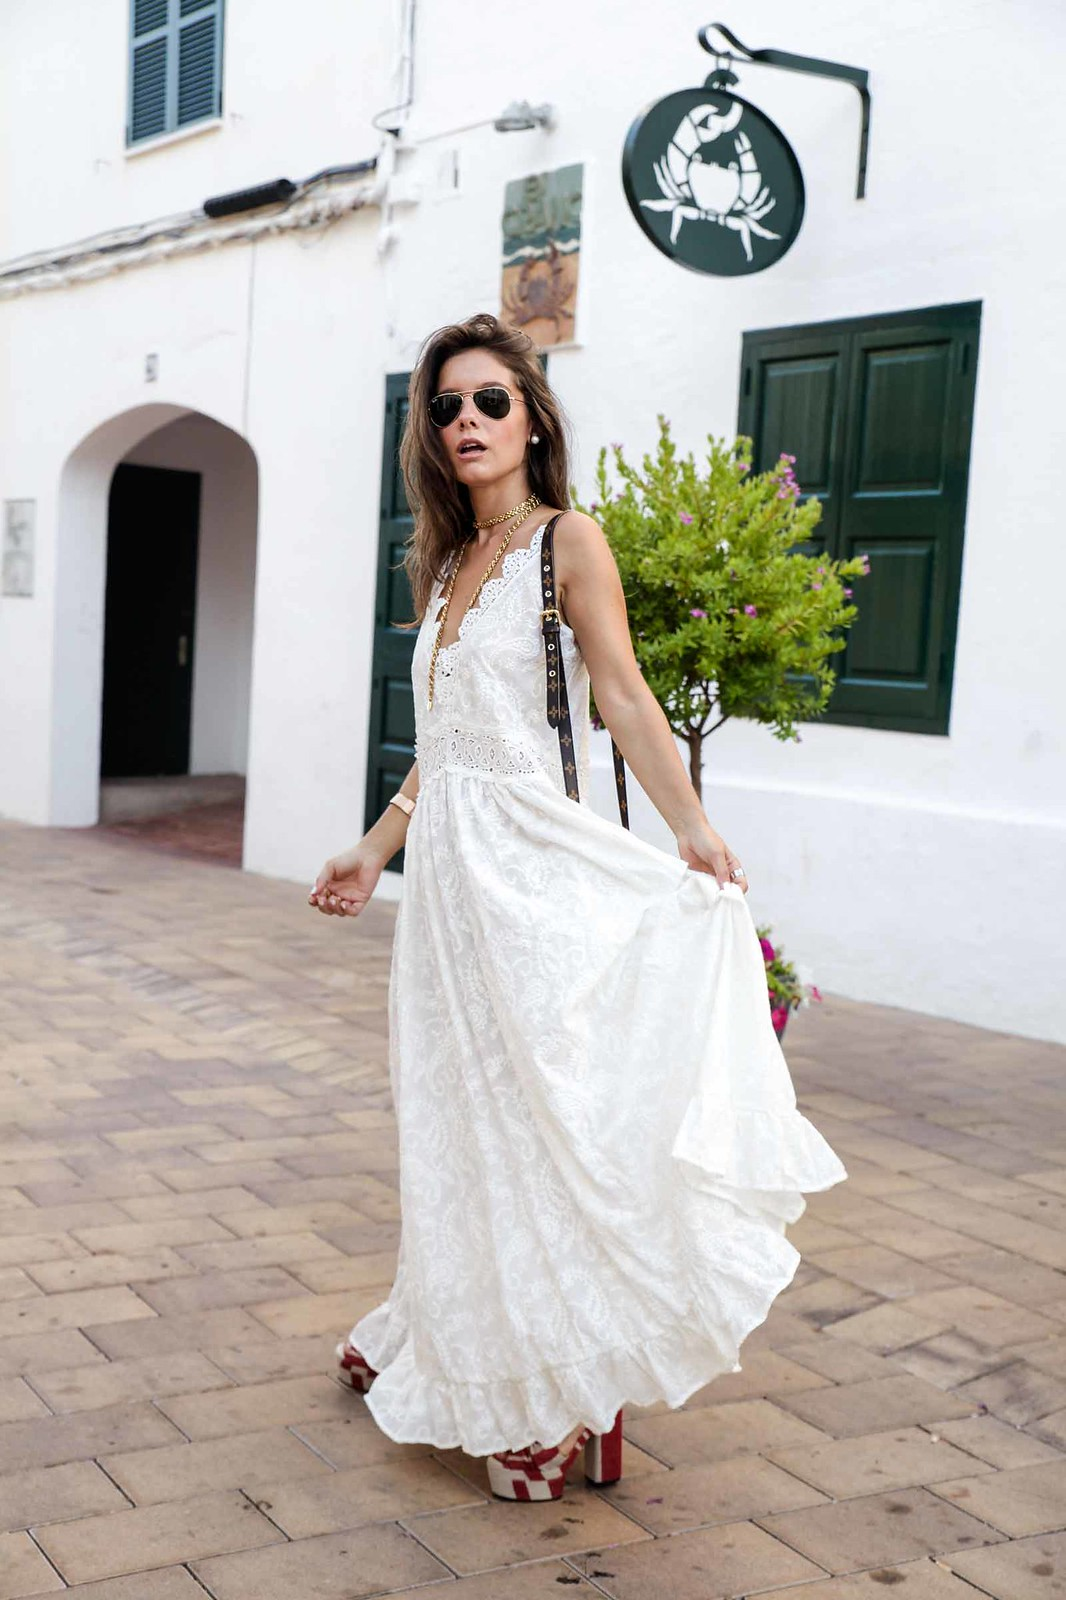 03_vestido_blanco_ibizenco_miss_june_long_dress_outfit_rayban_louis_vuitton_bag_outfit_streetstyle_influencer_barcelona_theguestgirl_the_guest_girl_barcelona_influencer